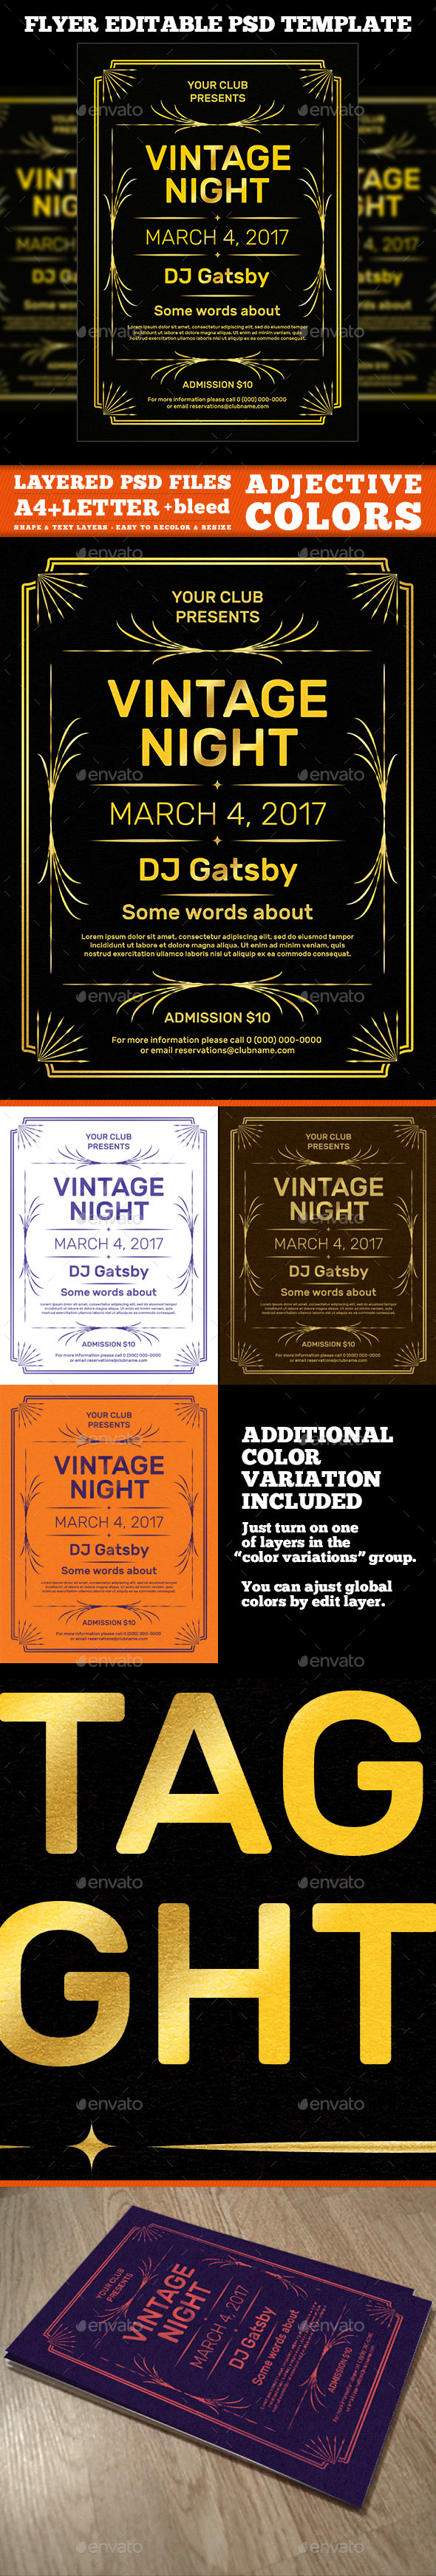 Vintage Flyer Template - Events Flyers